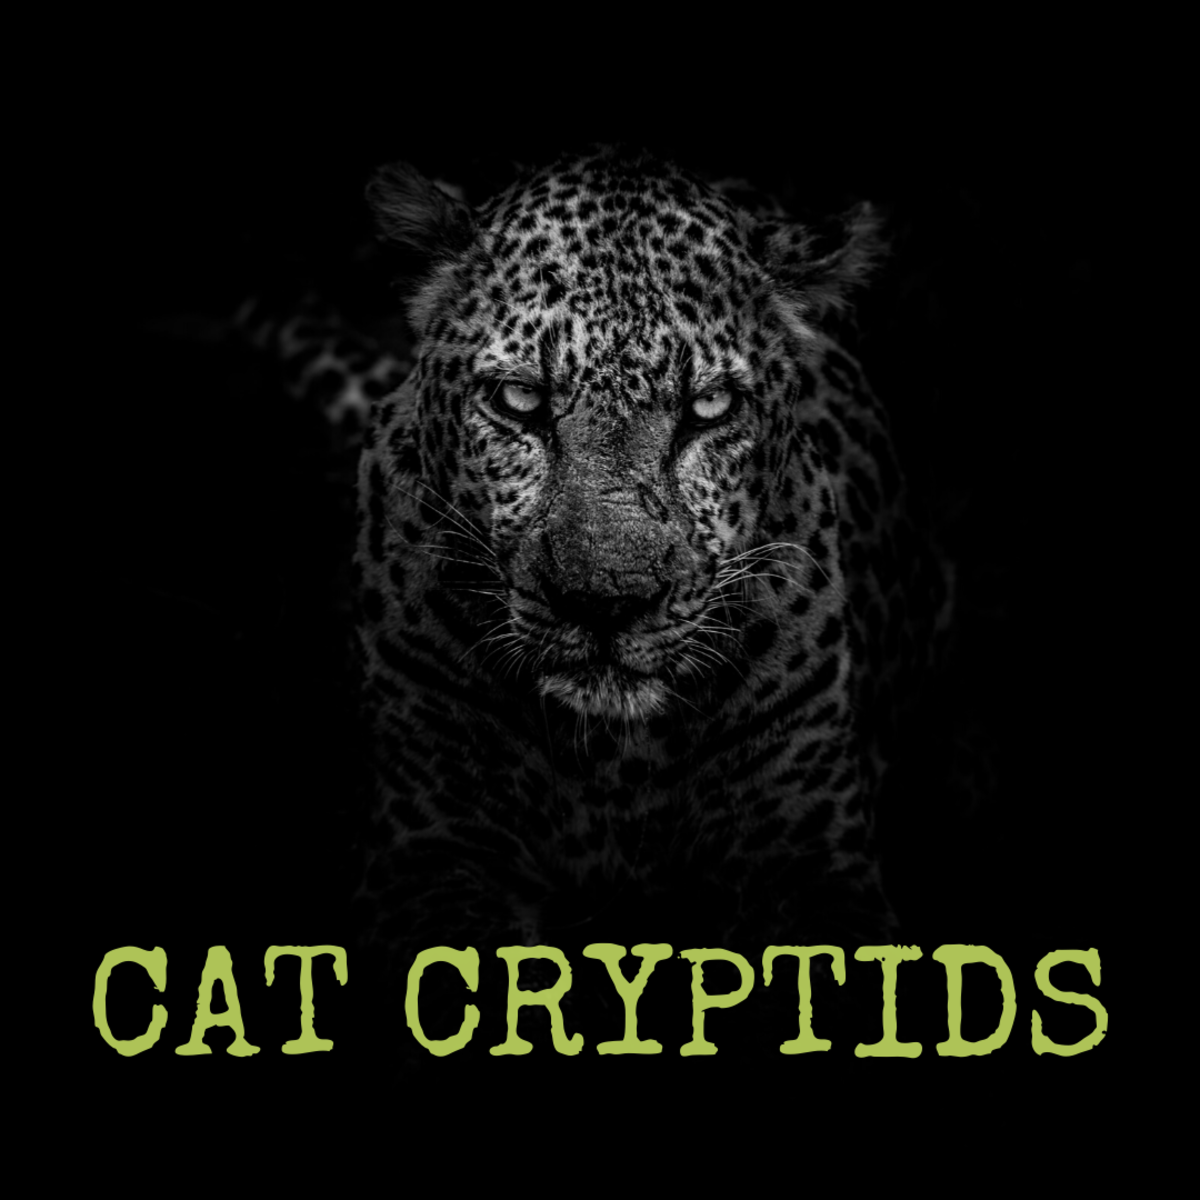 Learn about three legendary cats: the White Death, the Wampus Beast, and the Cactus Cat.